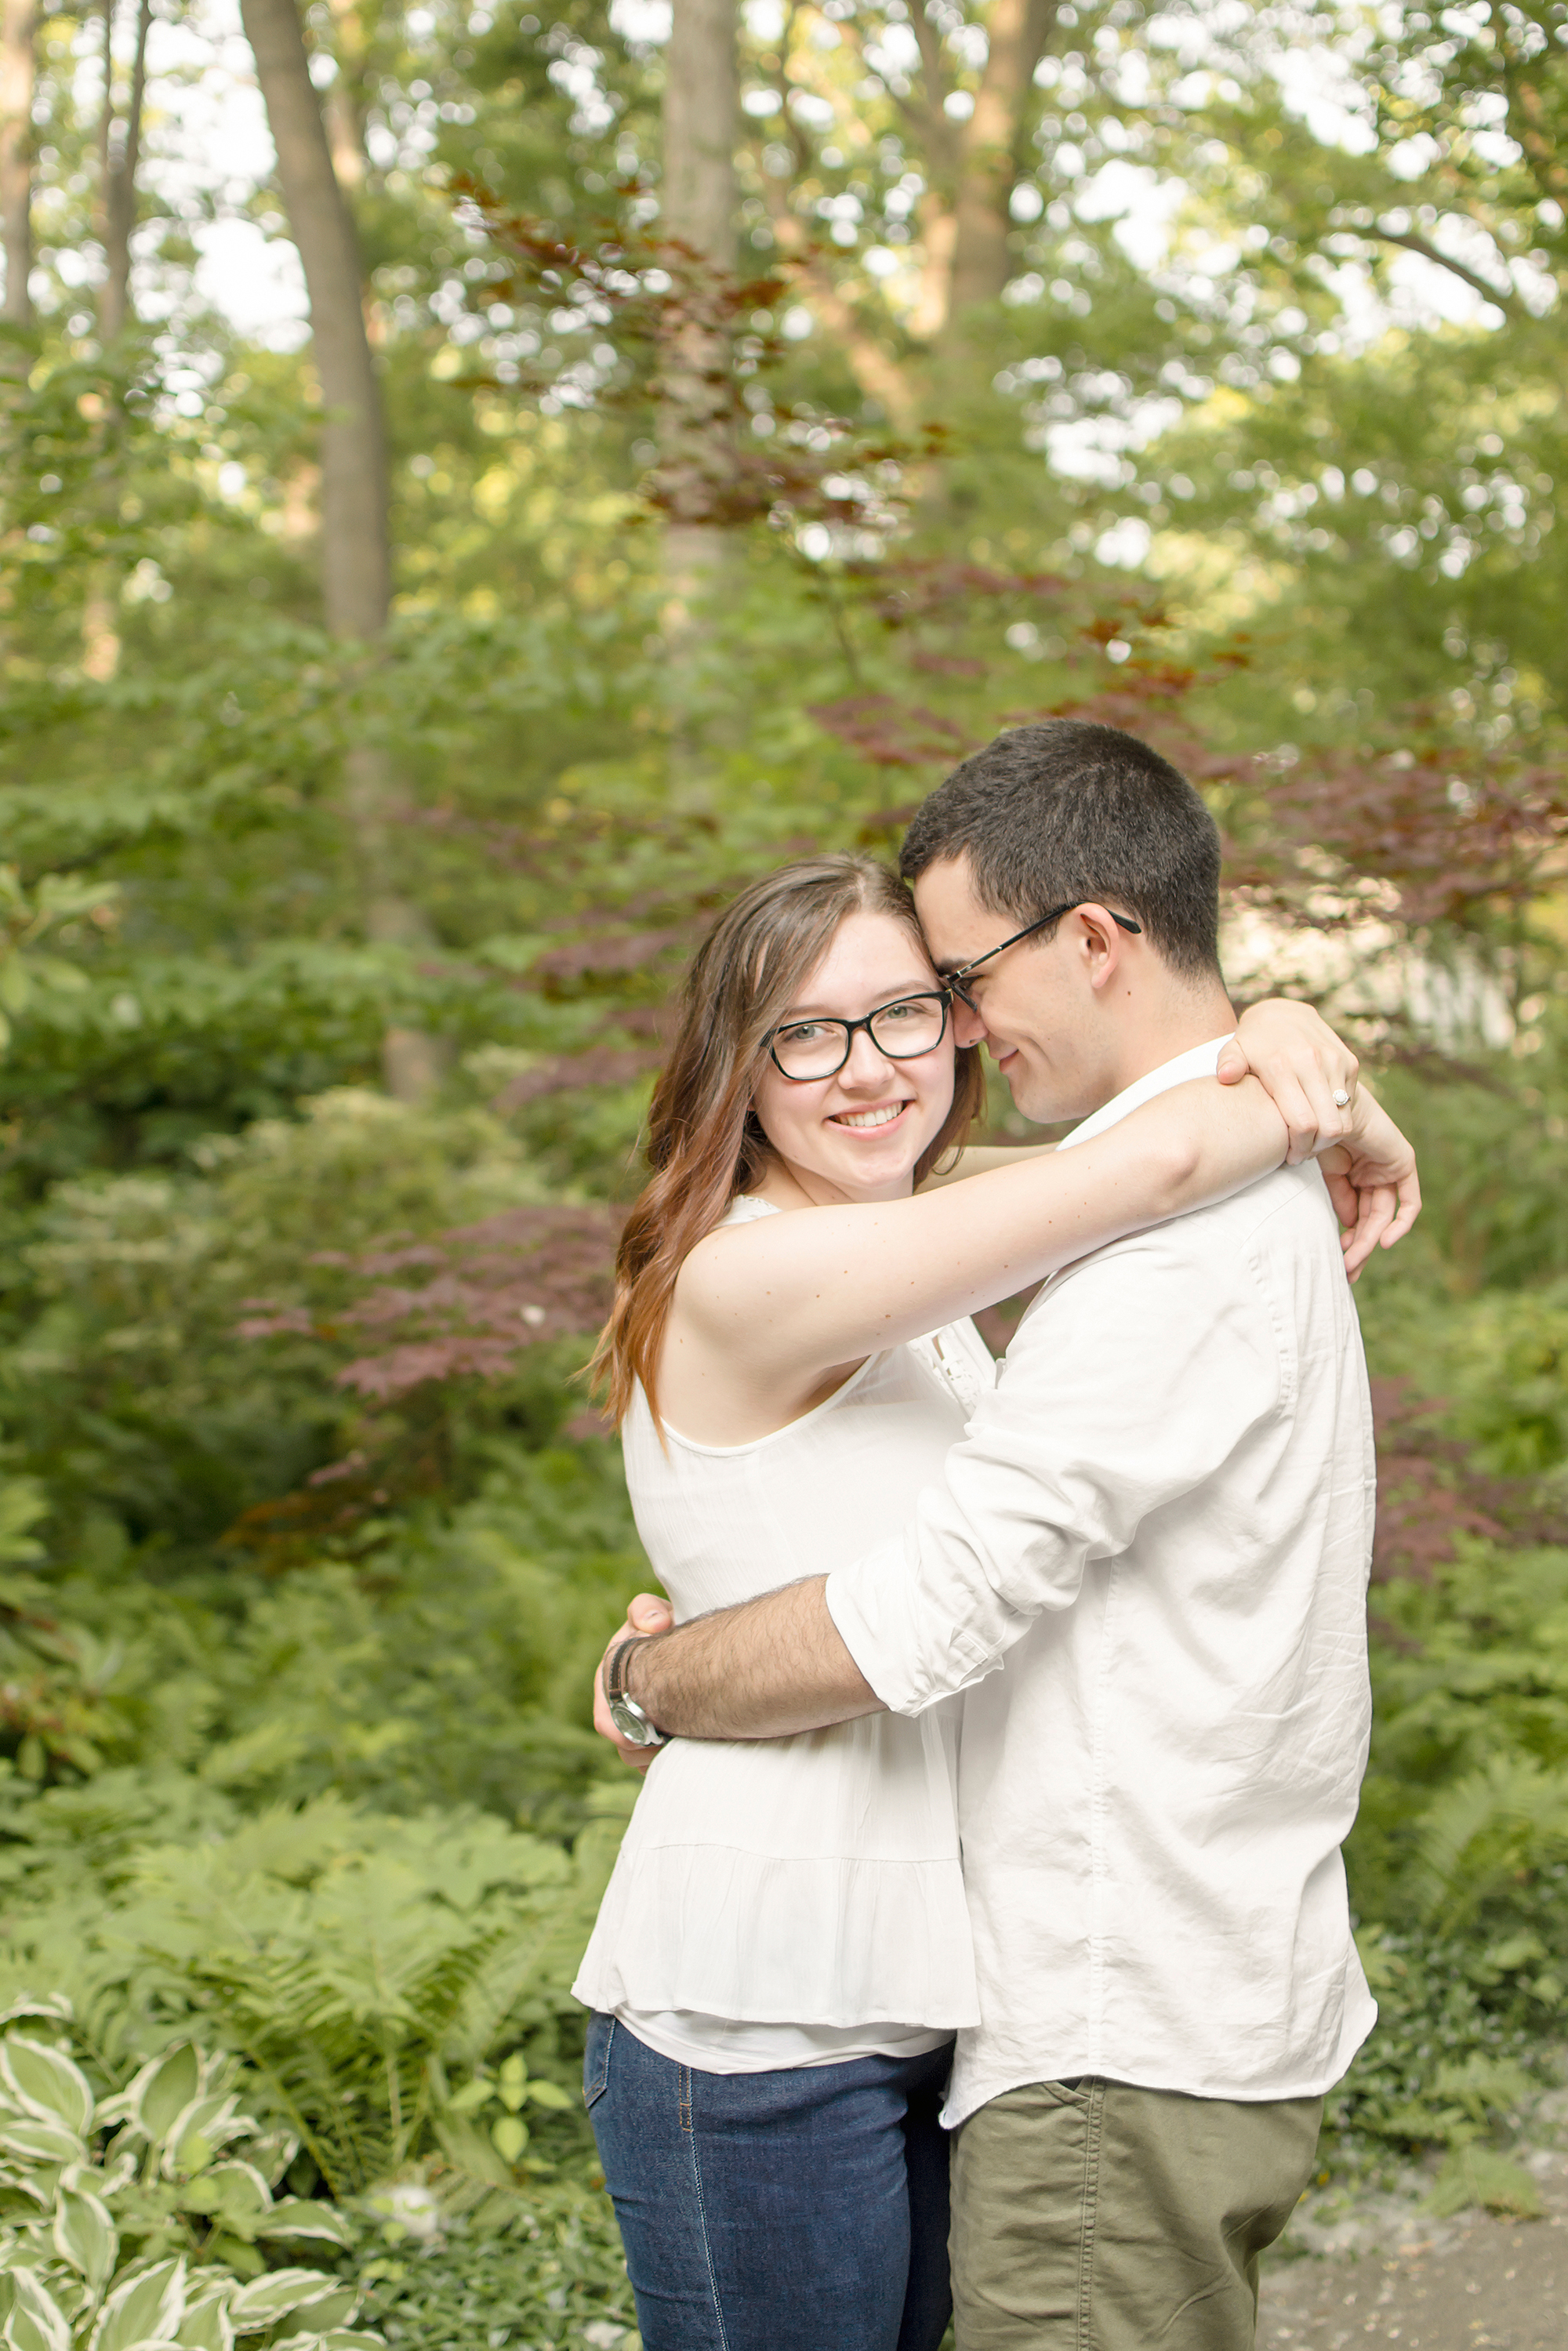 Lindsay-Adkins-Photography-Michigan-Wedding-Photographer-Becca-Ben-Blog-3